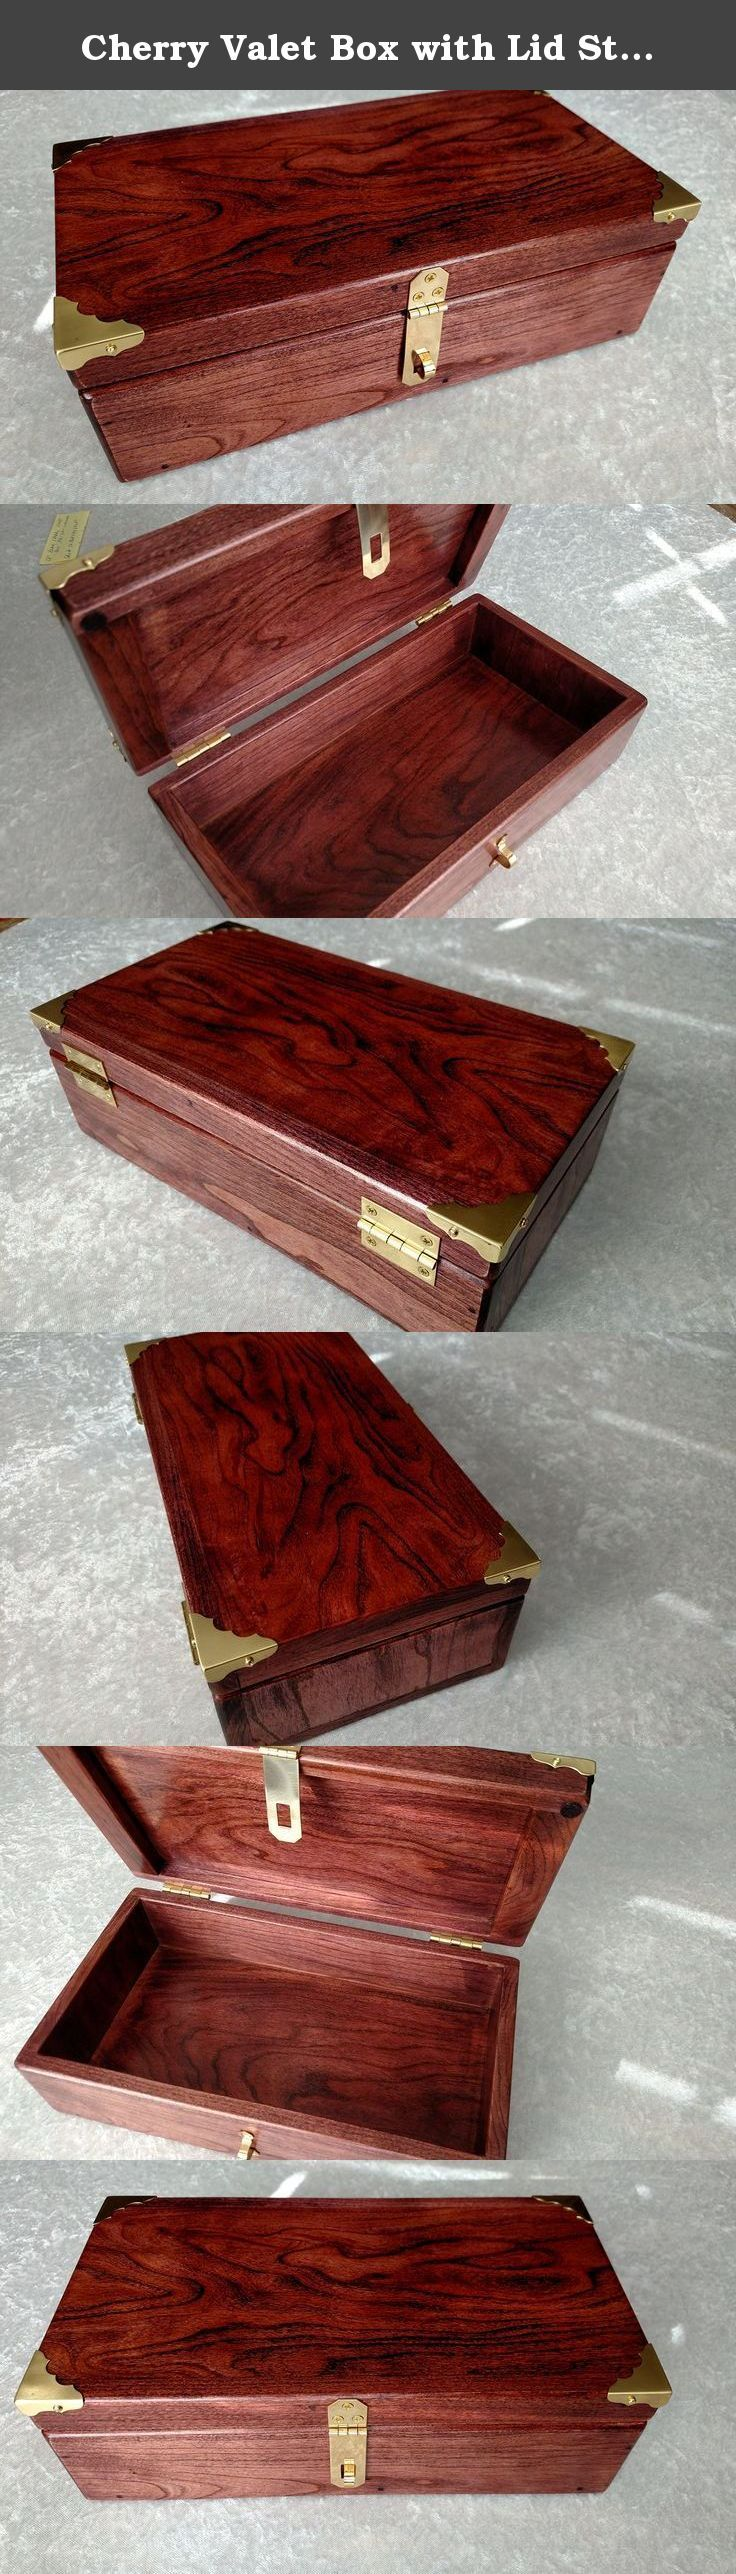 """Cherry Valet Box with Lid Stash Box Keepsake Box. Cherry Valet Box, keepsake box, stash box, made from solid .5"""" Cherry ,measures 12 x 6.5 x 3.75 . Box has a black cherry stain with lacquer finish. Wood grain will vary as each piece is unique. Lockable Solid brass hardware.Great storage for all of those special items ."""